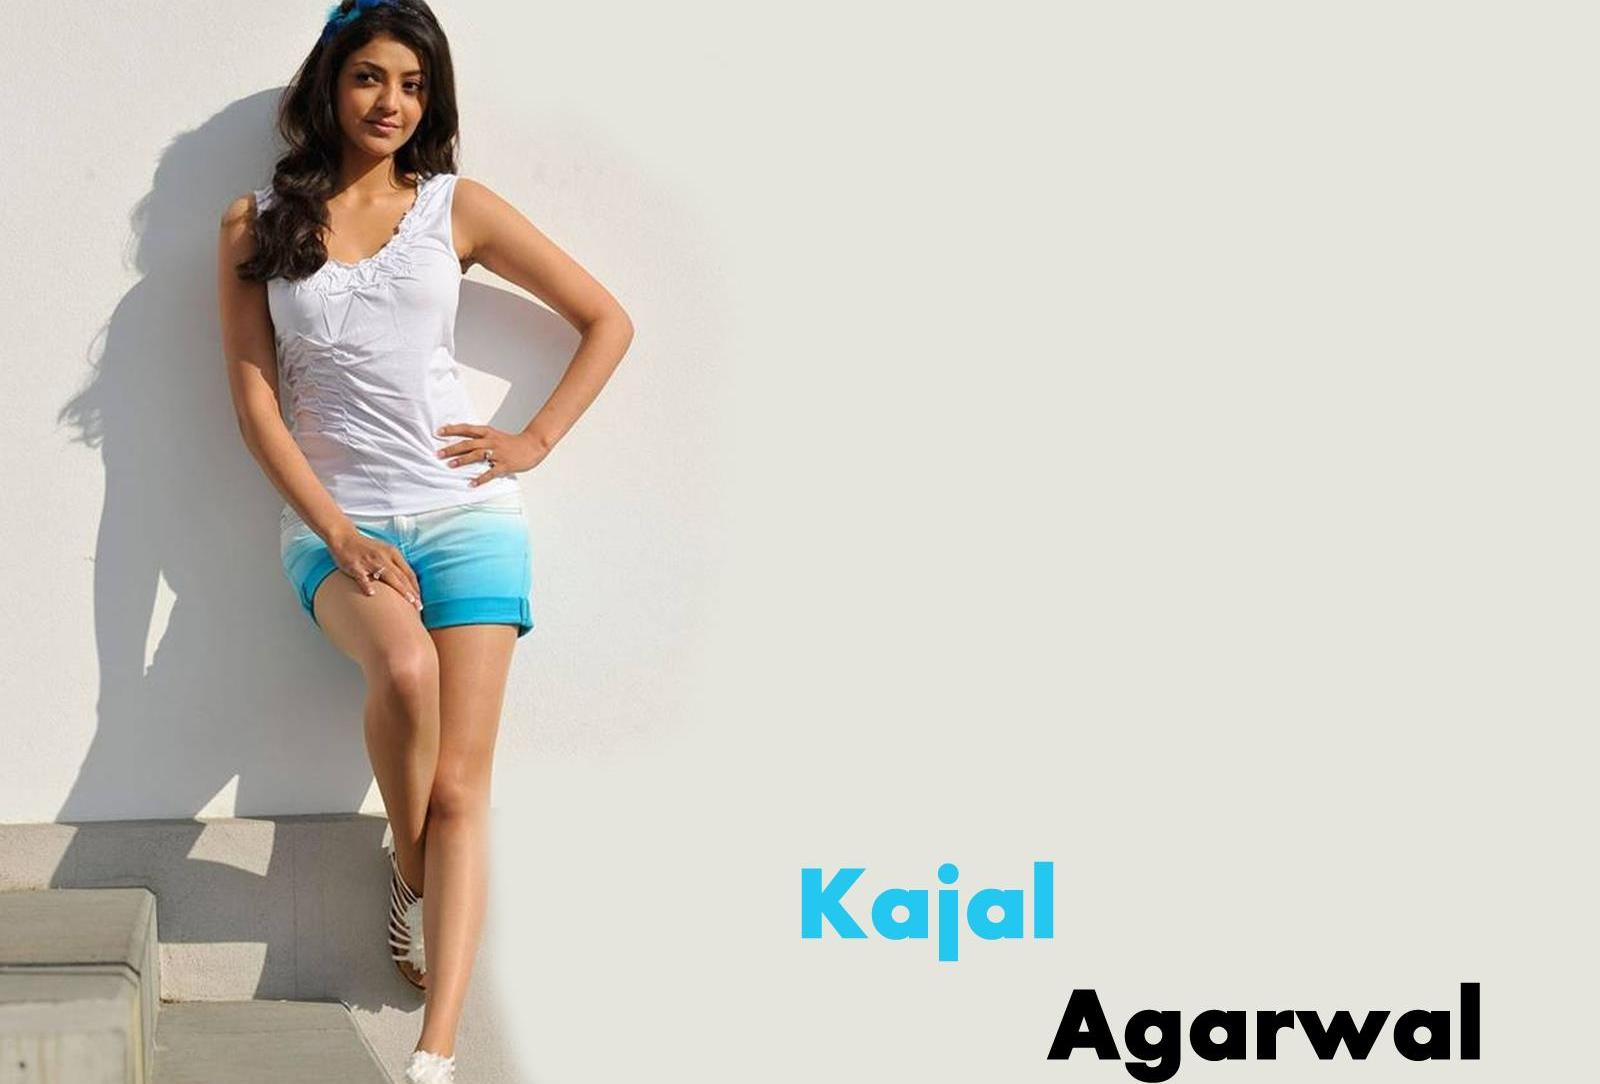 kajal-agarwal-hot-in-white-top-hd-wallpaper